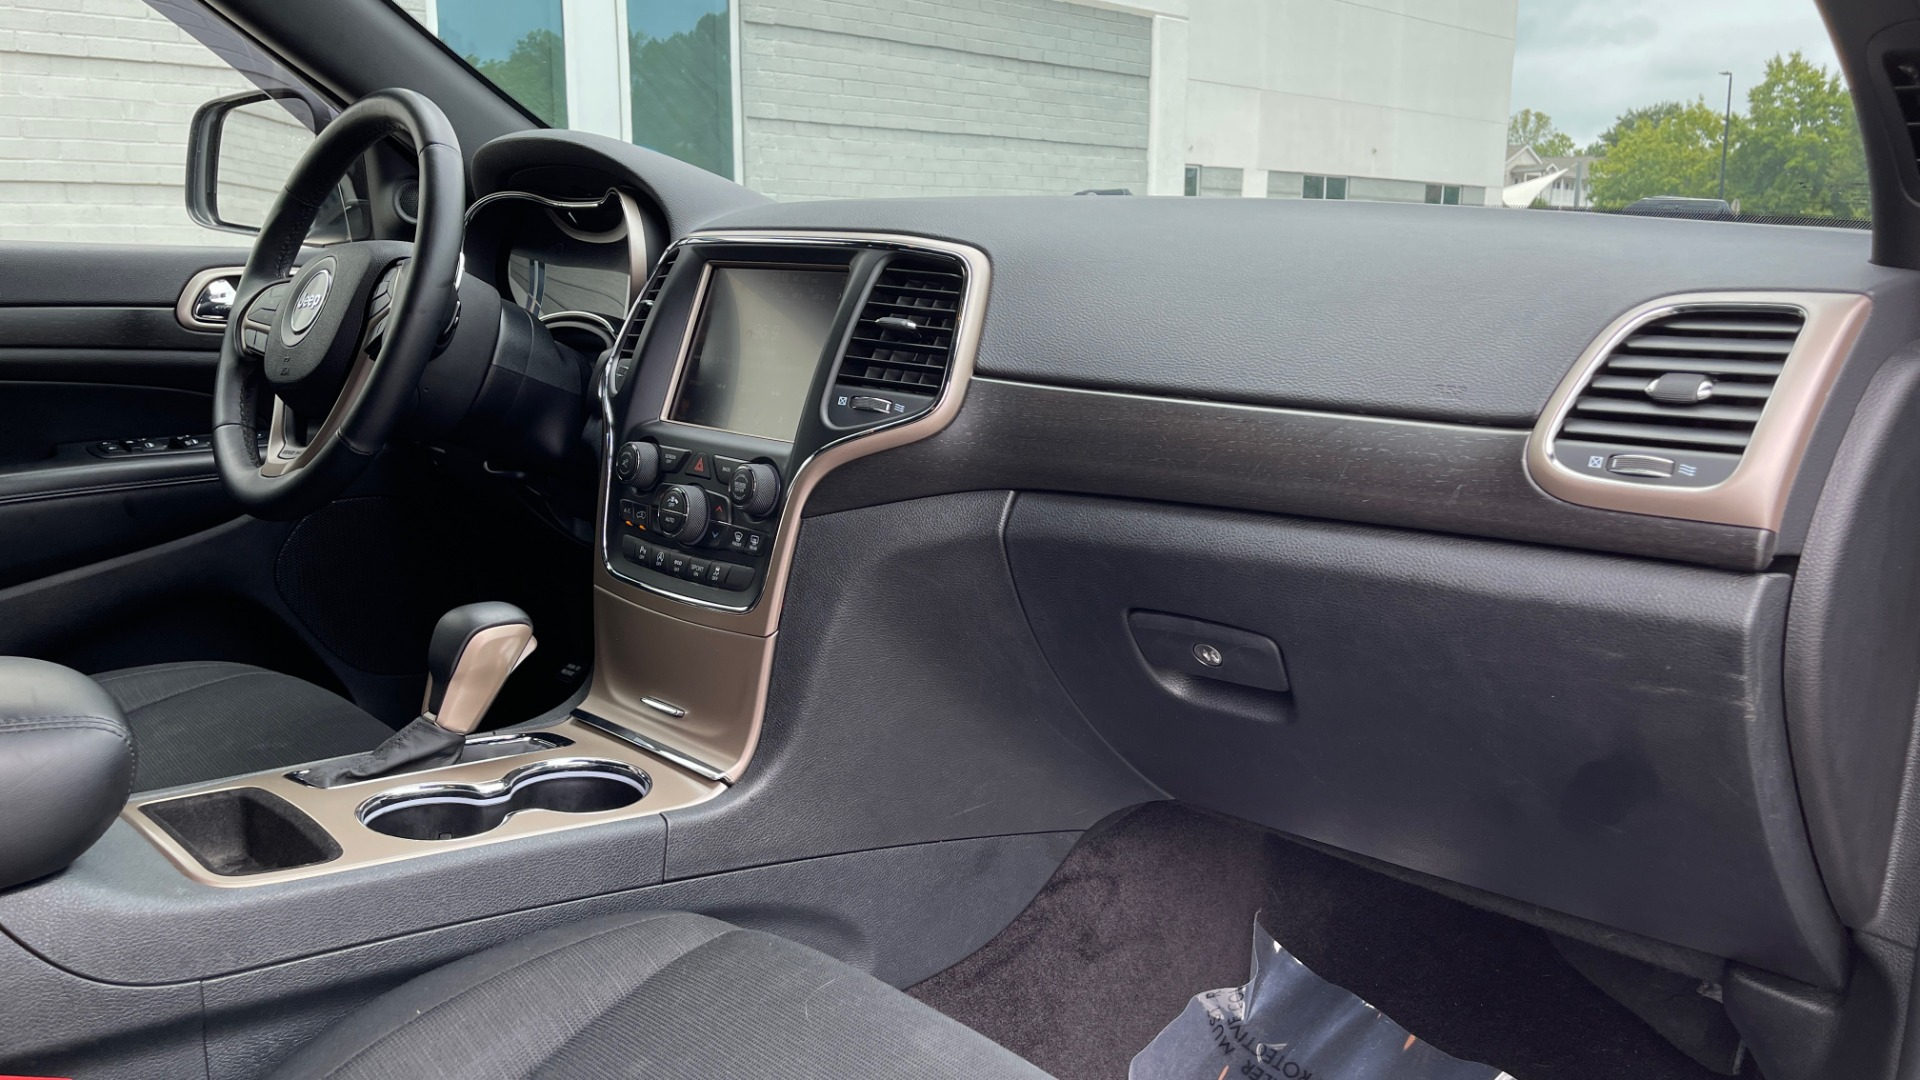 Used 2017 Jeep GRAND CHEROKEE LAREDO E 4X4 / KEYLESS-GO / 8.4IN TOUCH SCREEN / REARVIEW for sale $27,595 at Formula Imports in Charlotte NC 28227 55